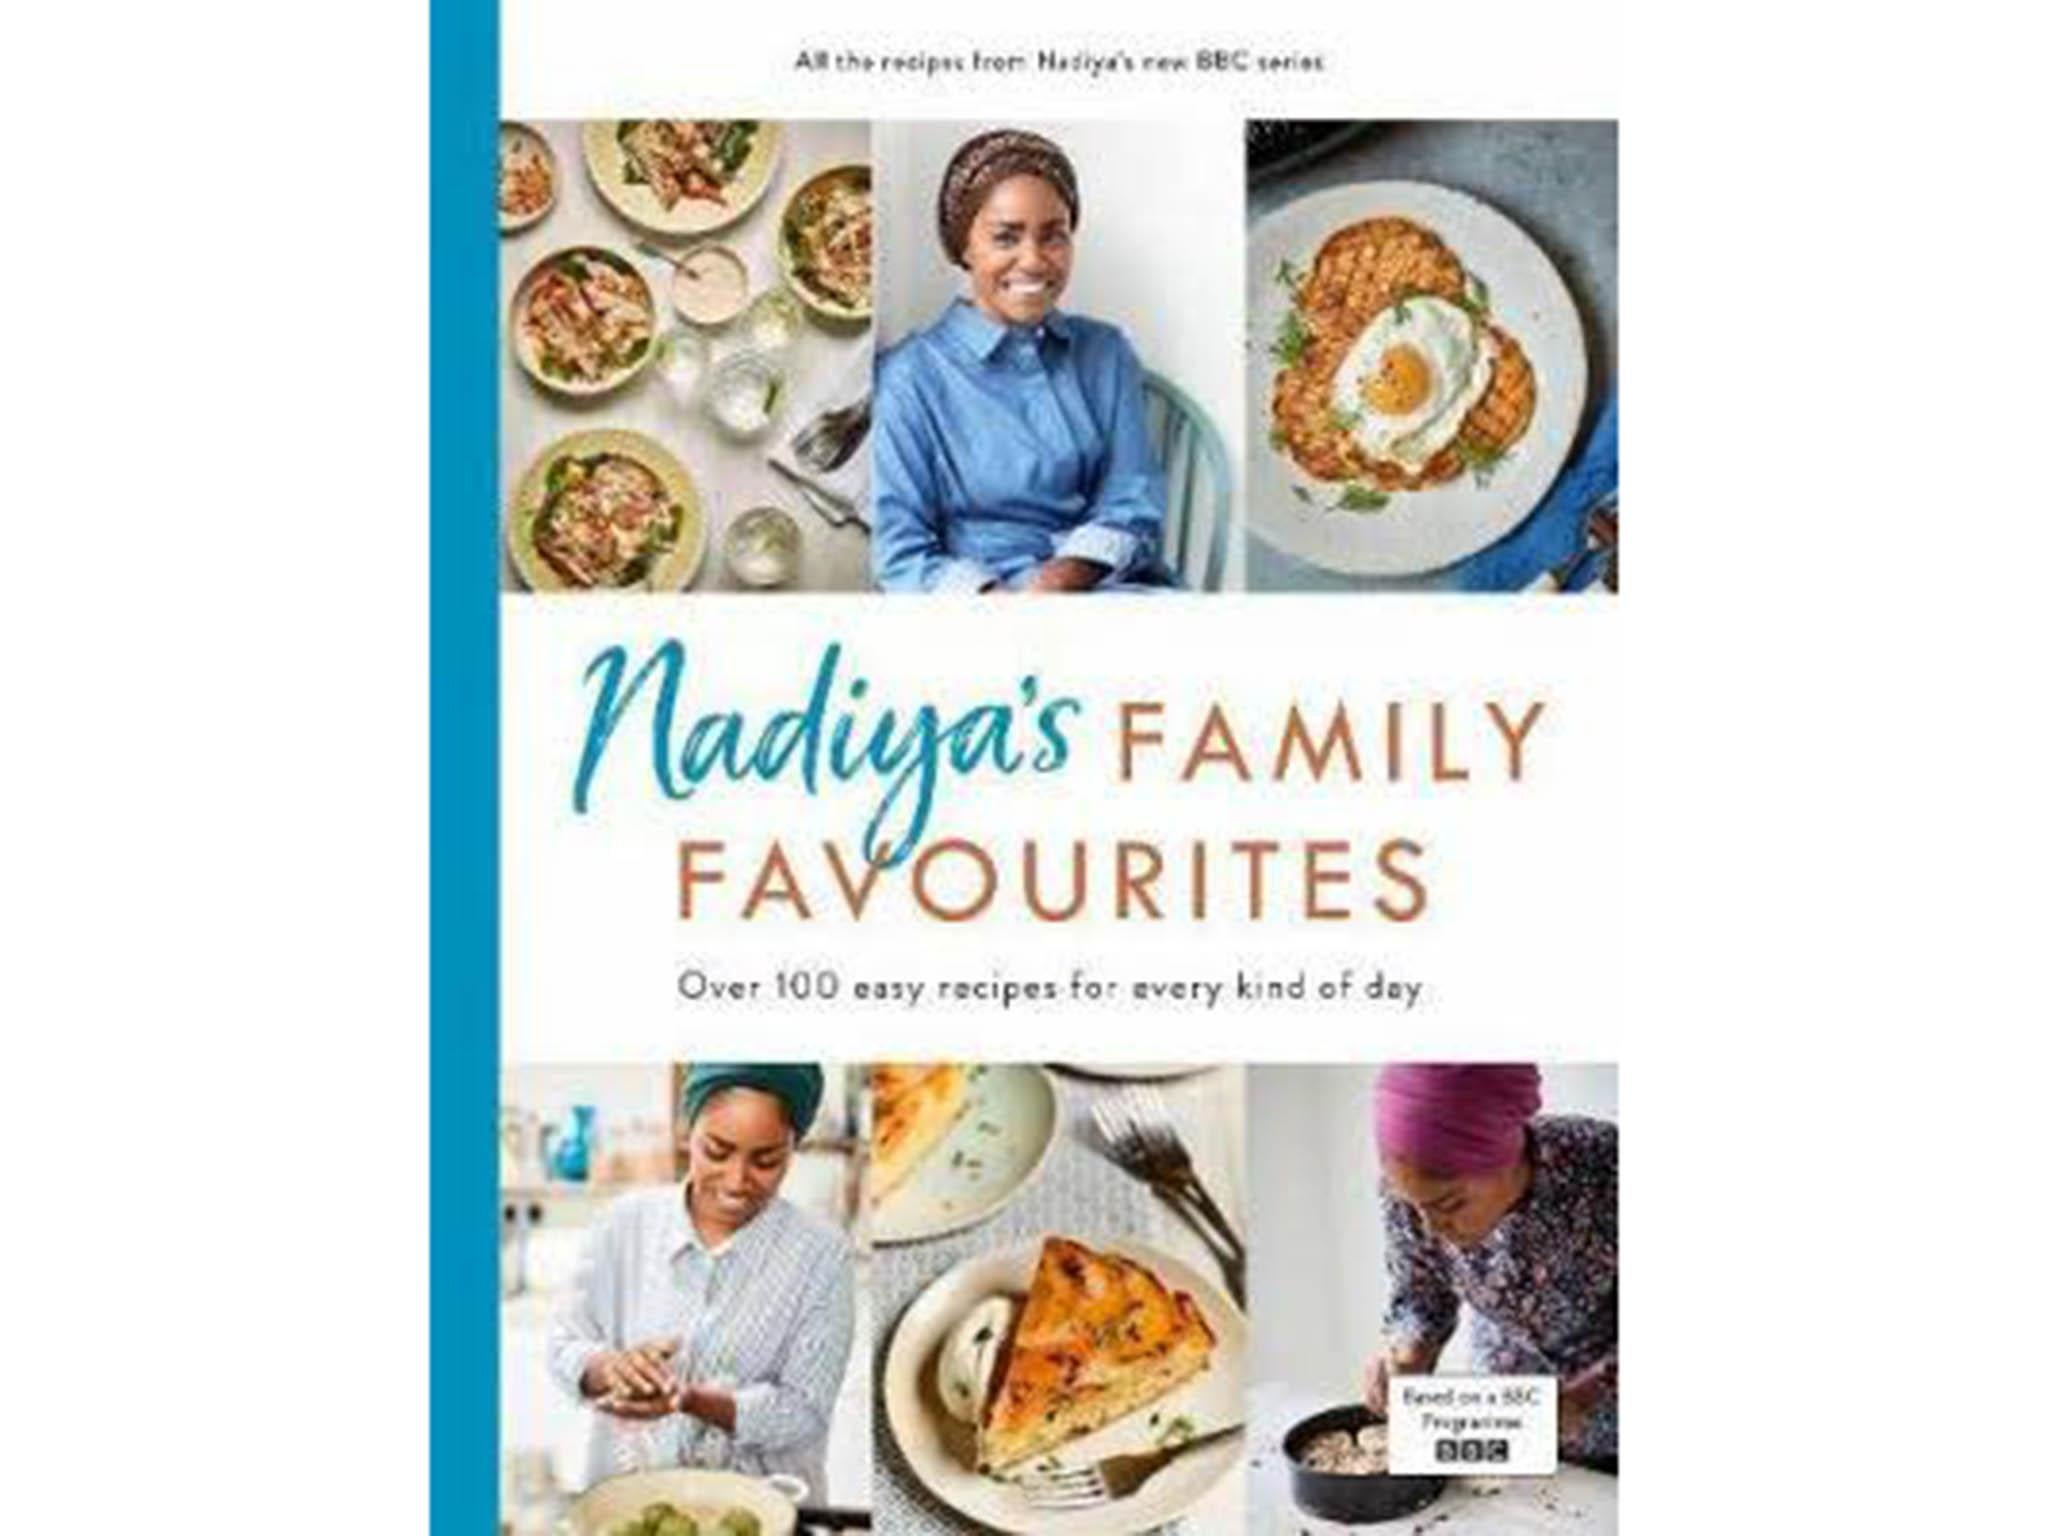 20 best new cookbooks of 2018   the independent